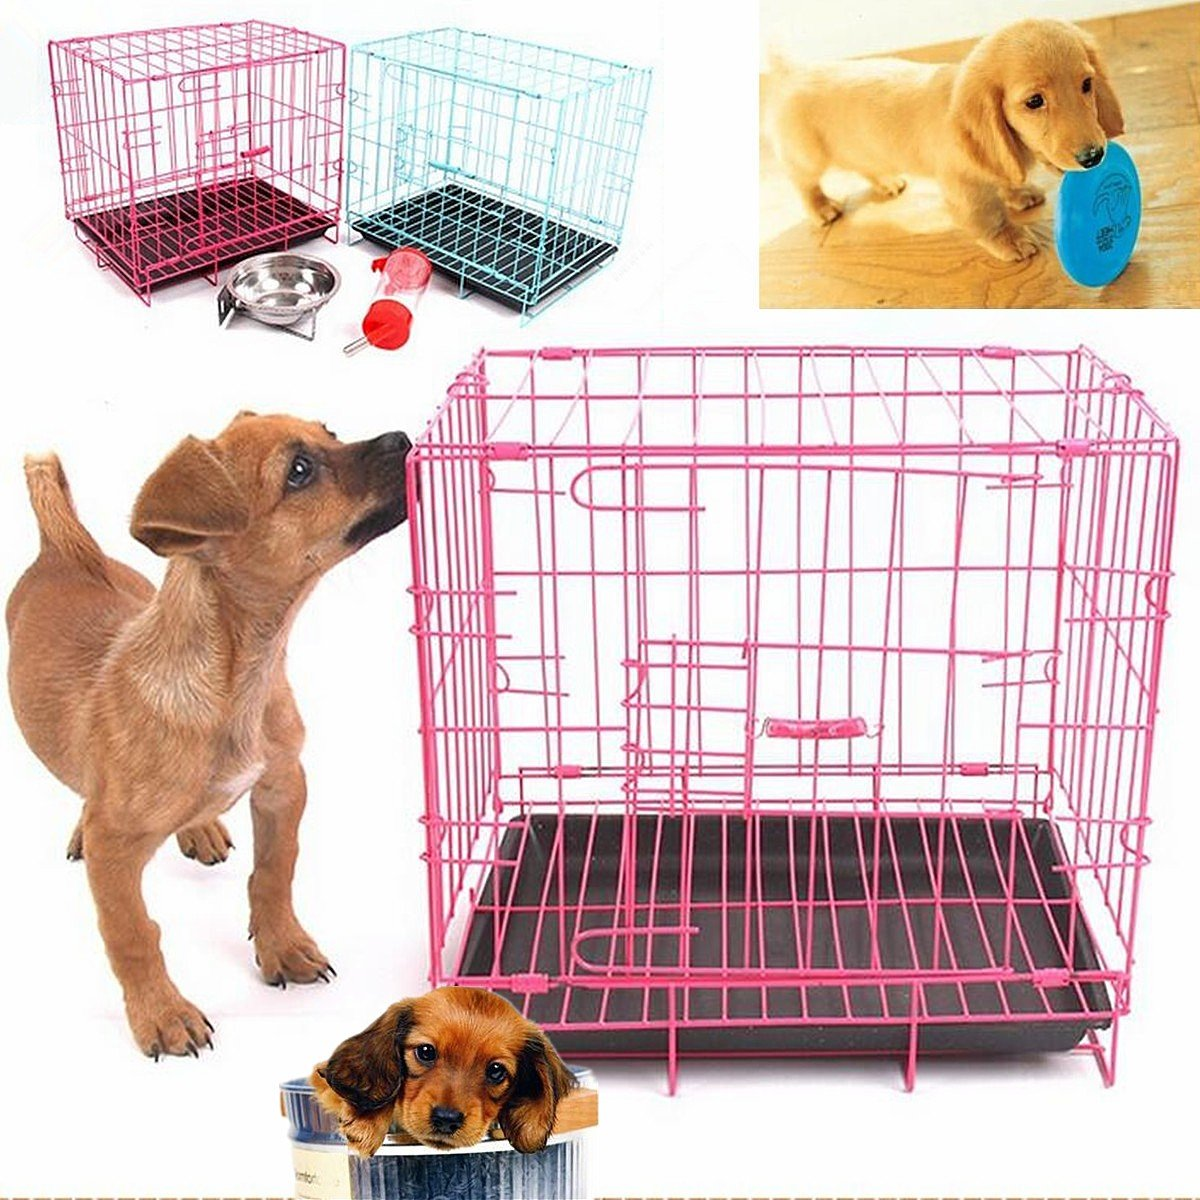 35x28x35cm Folding Dog Cage Rabbit Puppy Crate Metal Training Pet Carrier  Play Kennel